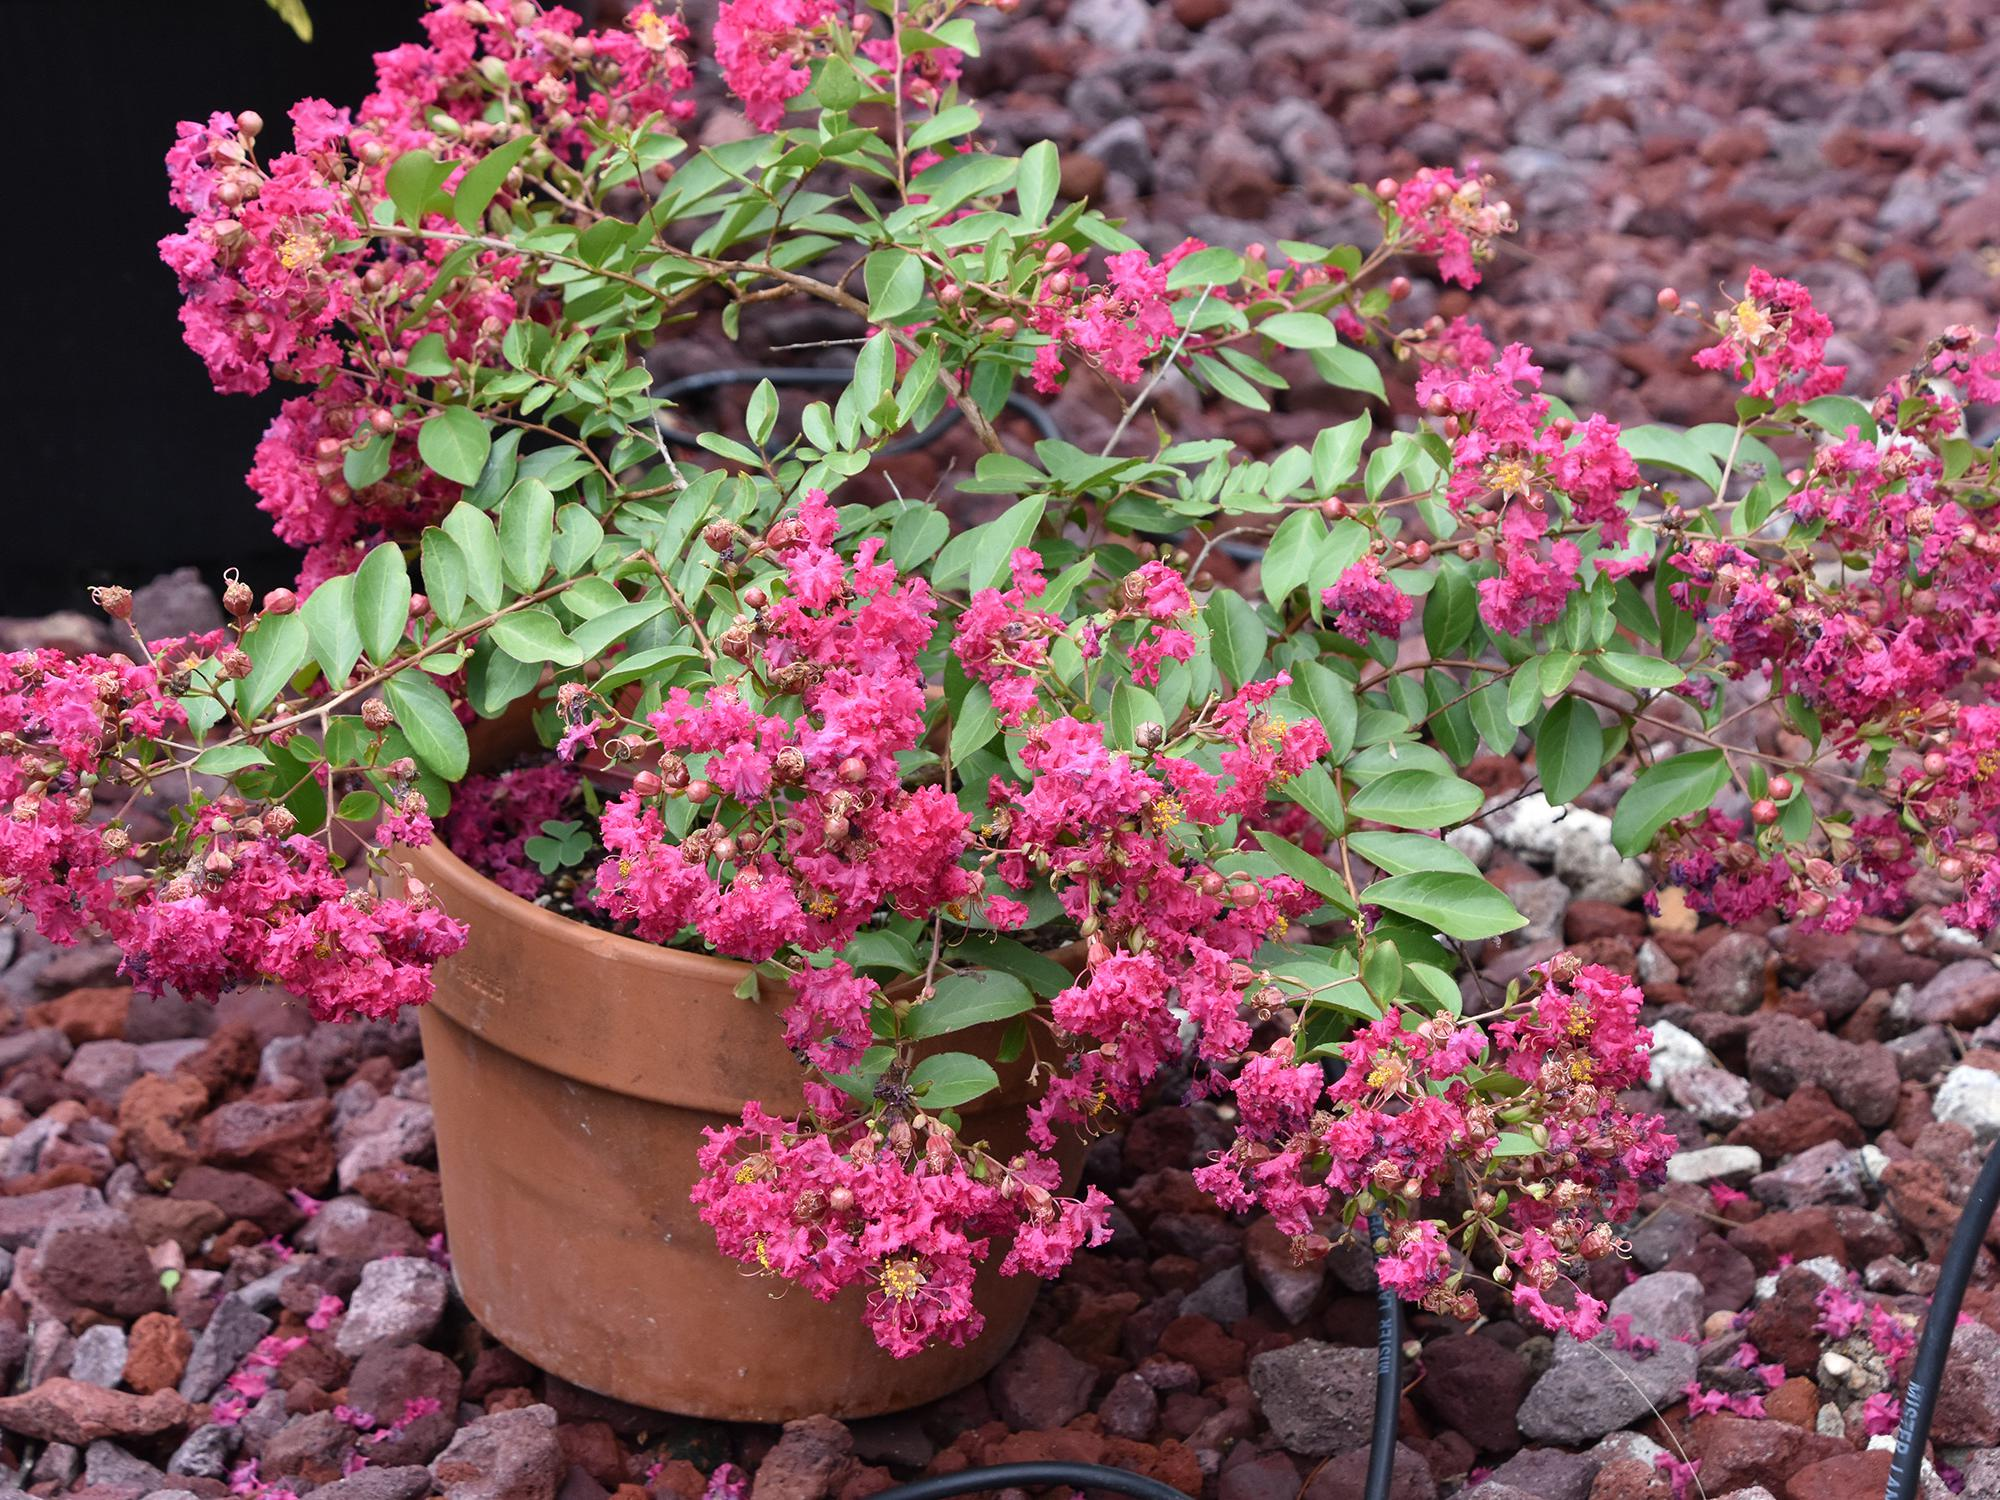 A brown clay pot contains a small bush with pink flowers.